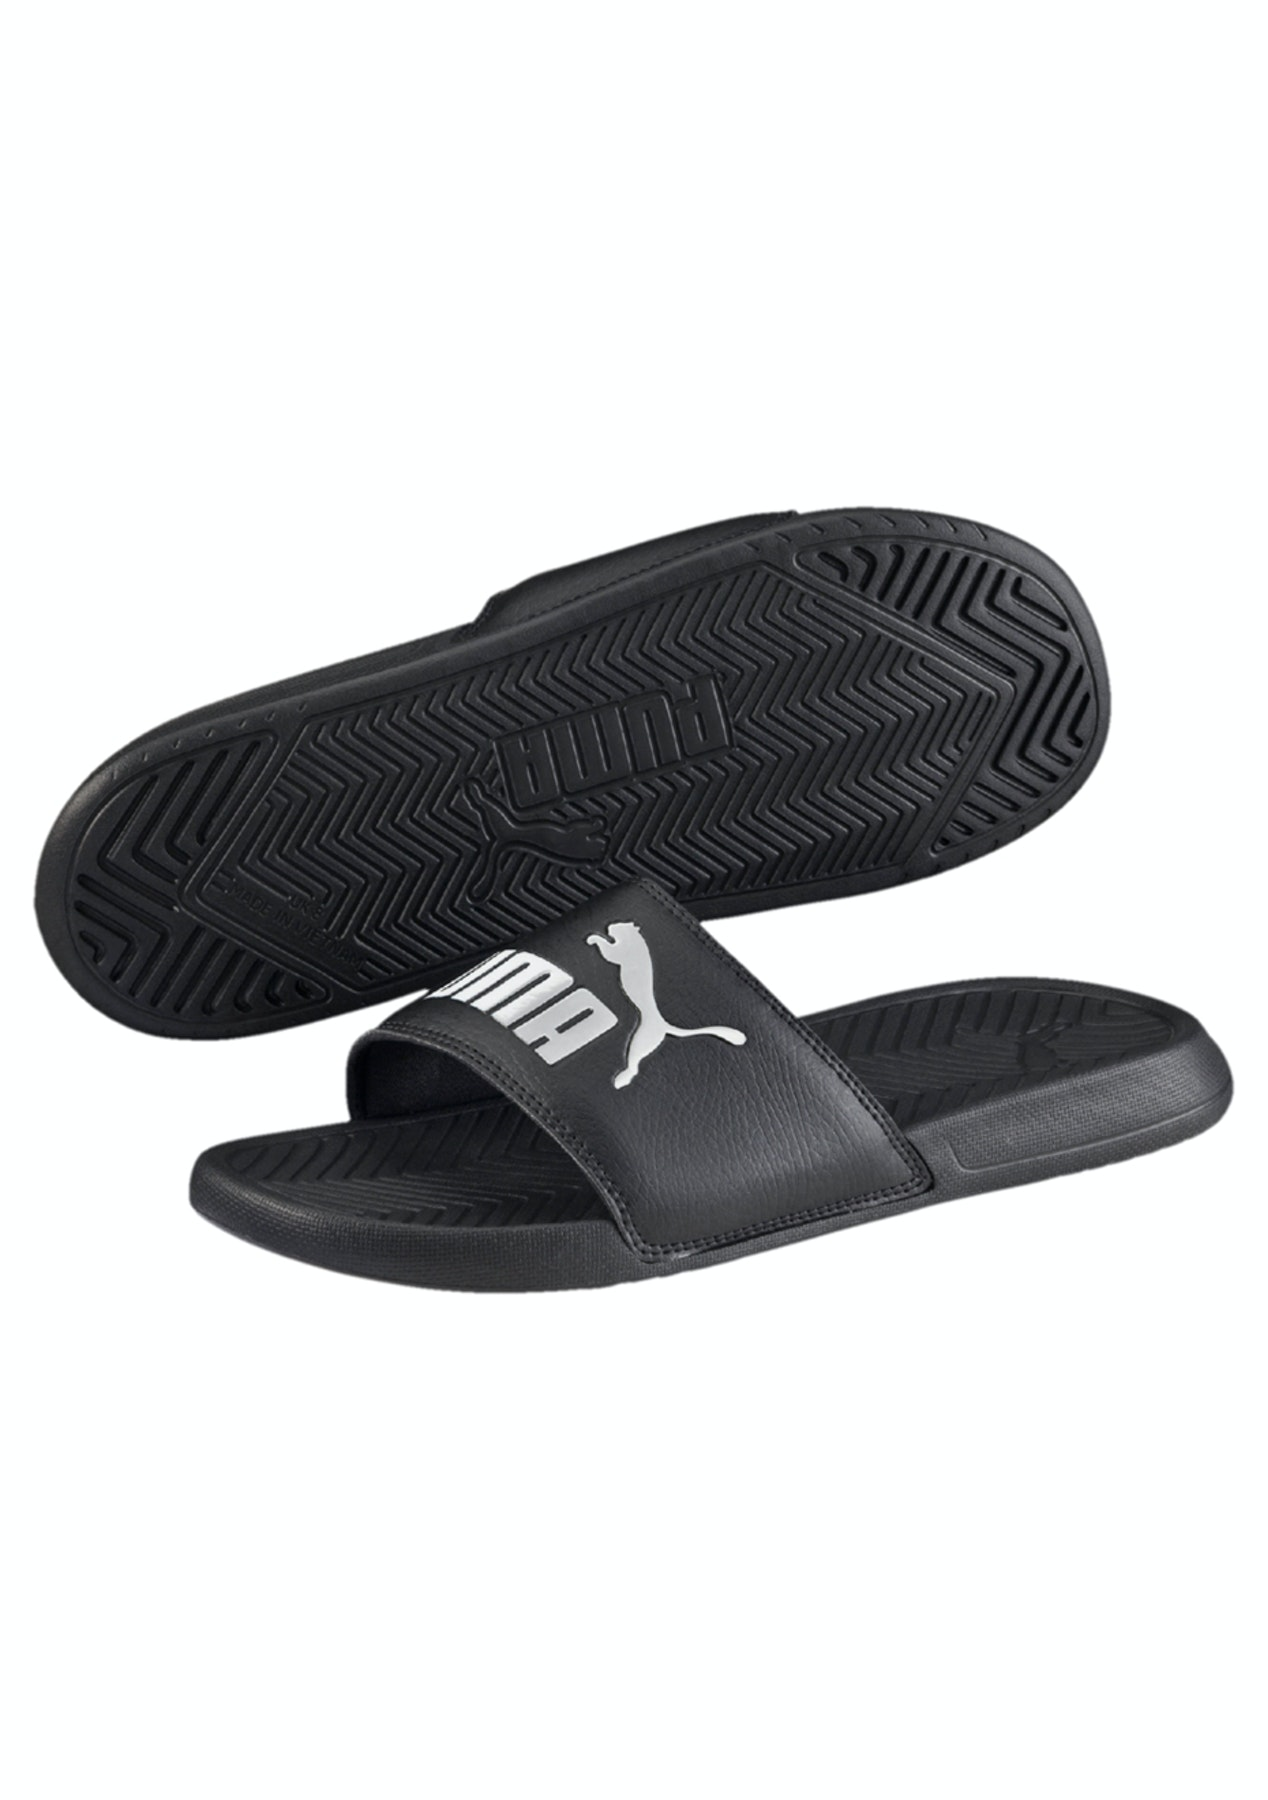 691243685fdb46 Puma - Popcat Slides Black-White - Womens - Summer Slides and Sandals -  Onceit